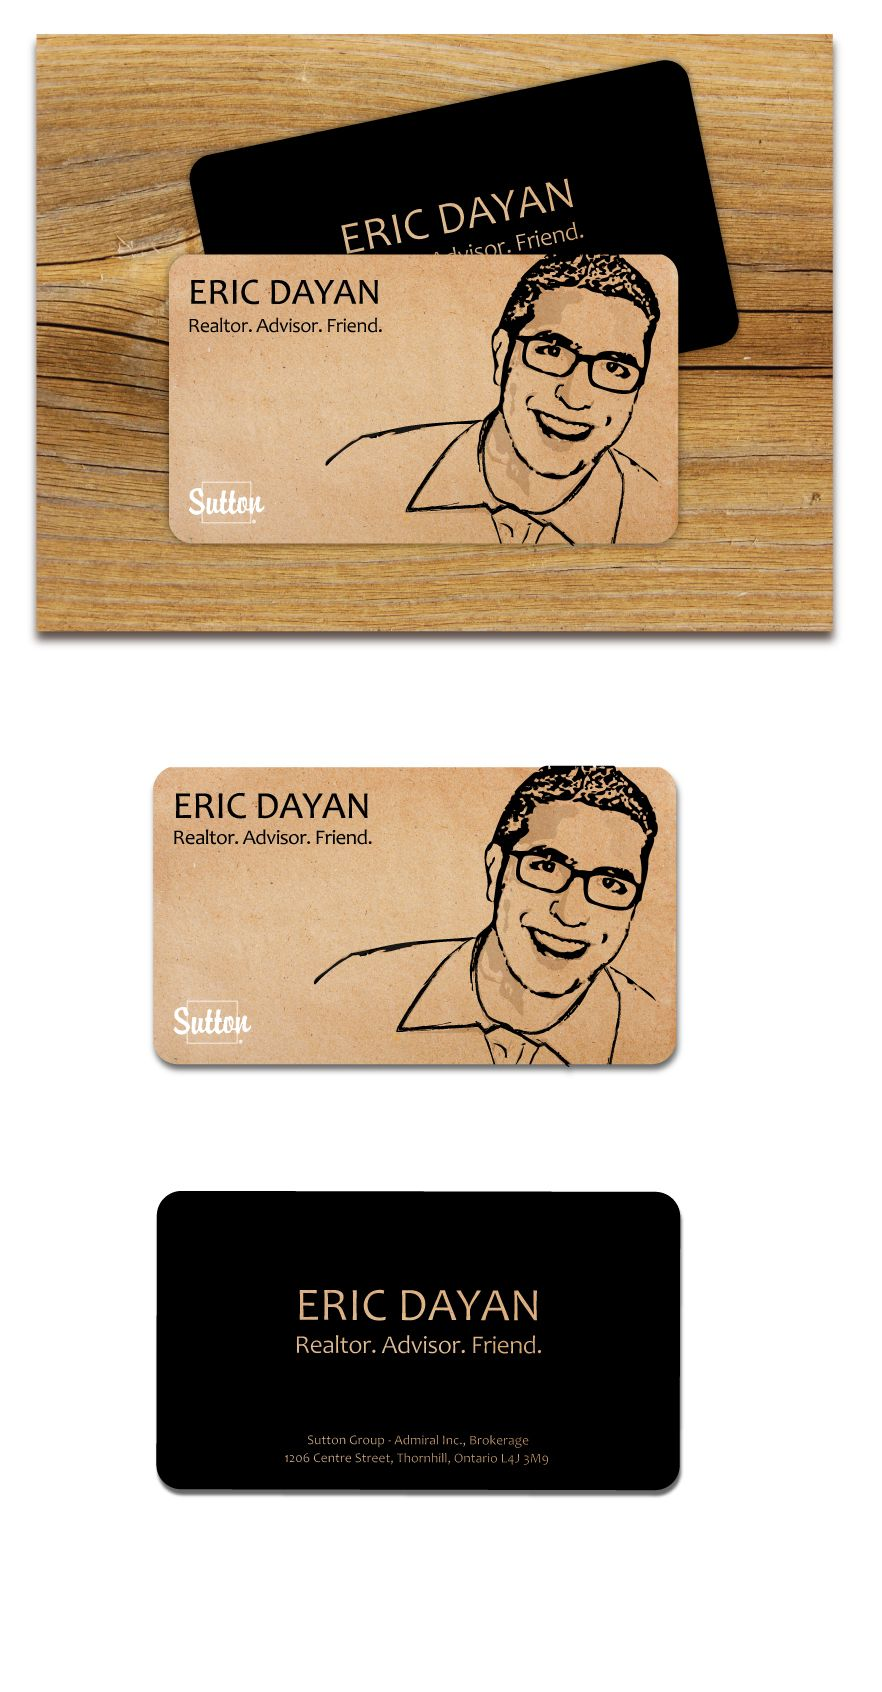 Eric dayan realtor business card on behance realtor business eric dayan realtor business card on behance reheart Image collections